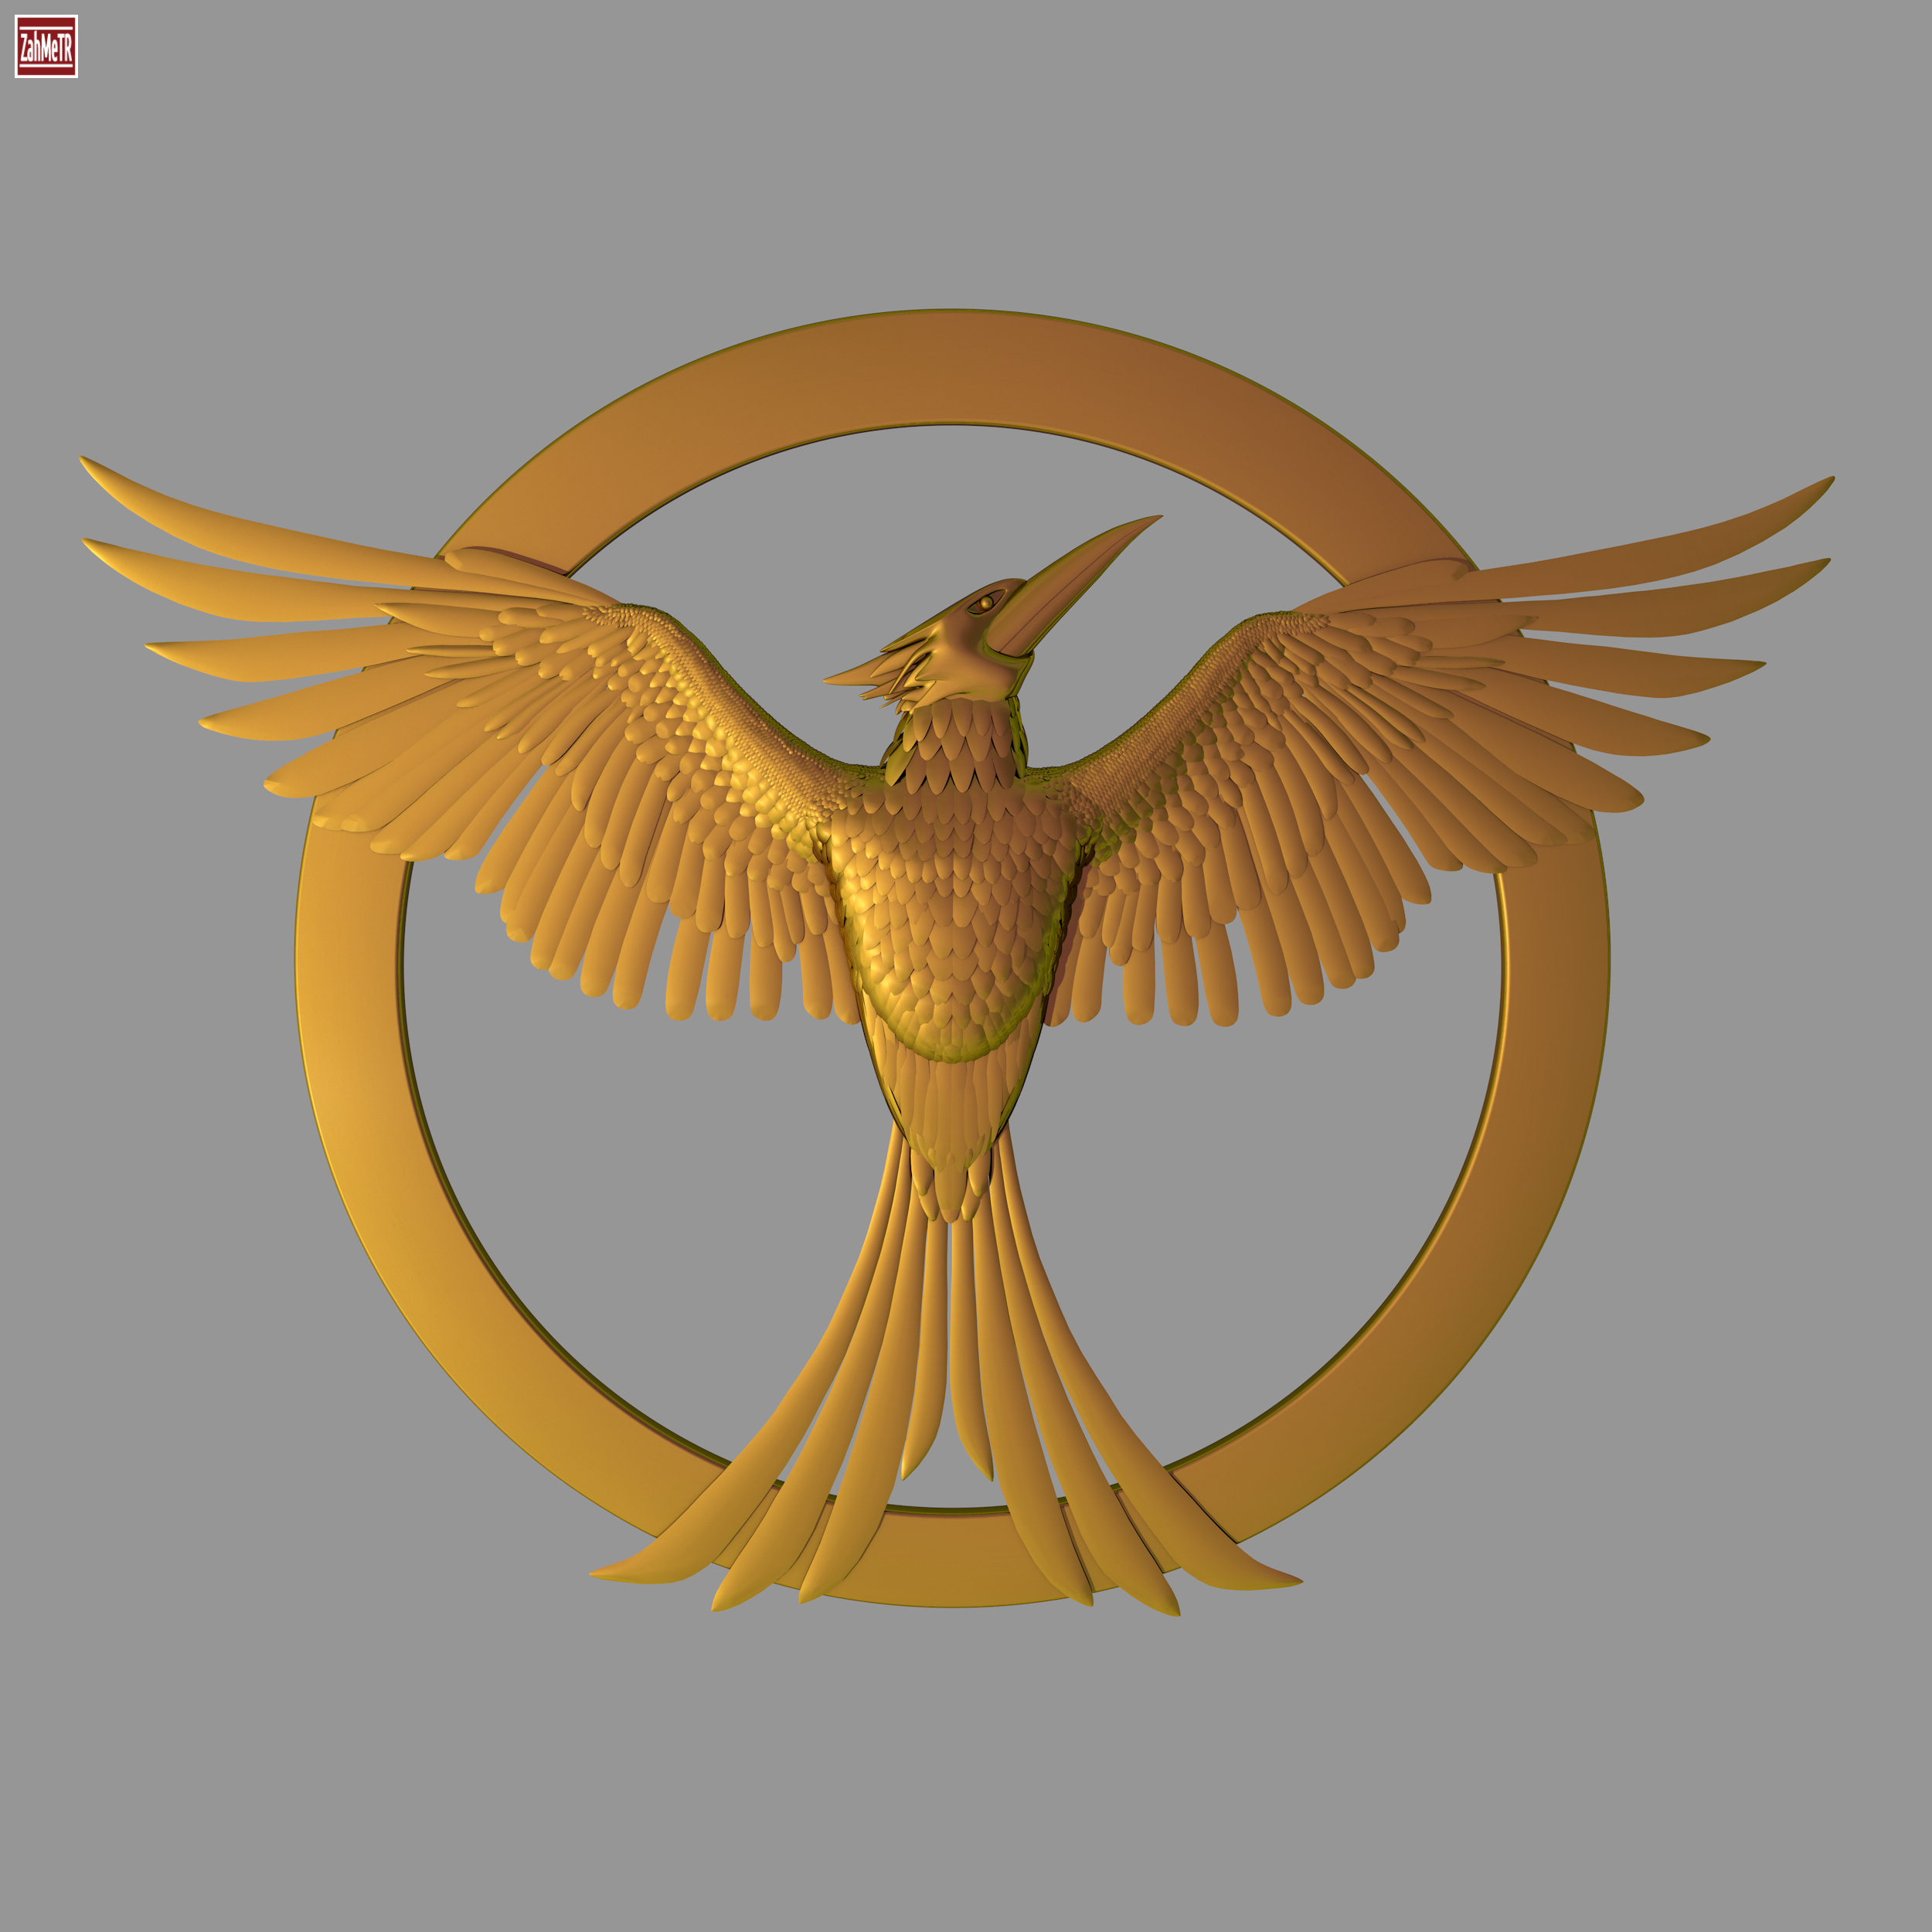 Mockingjay bird 3d model hunger games by zahmetr 3docean mockingjay bird 3d model hunger games biocorpaavc Choice Image